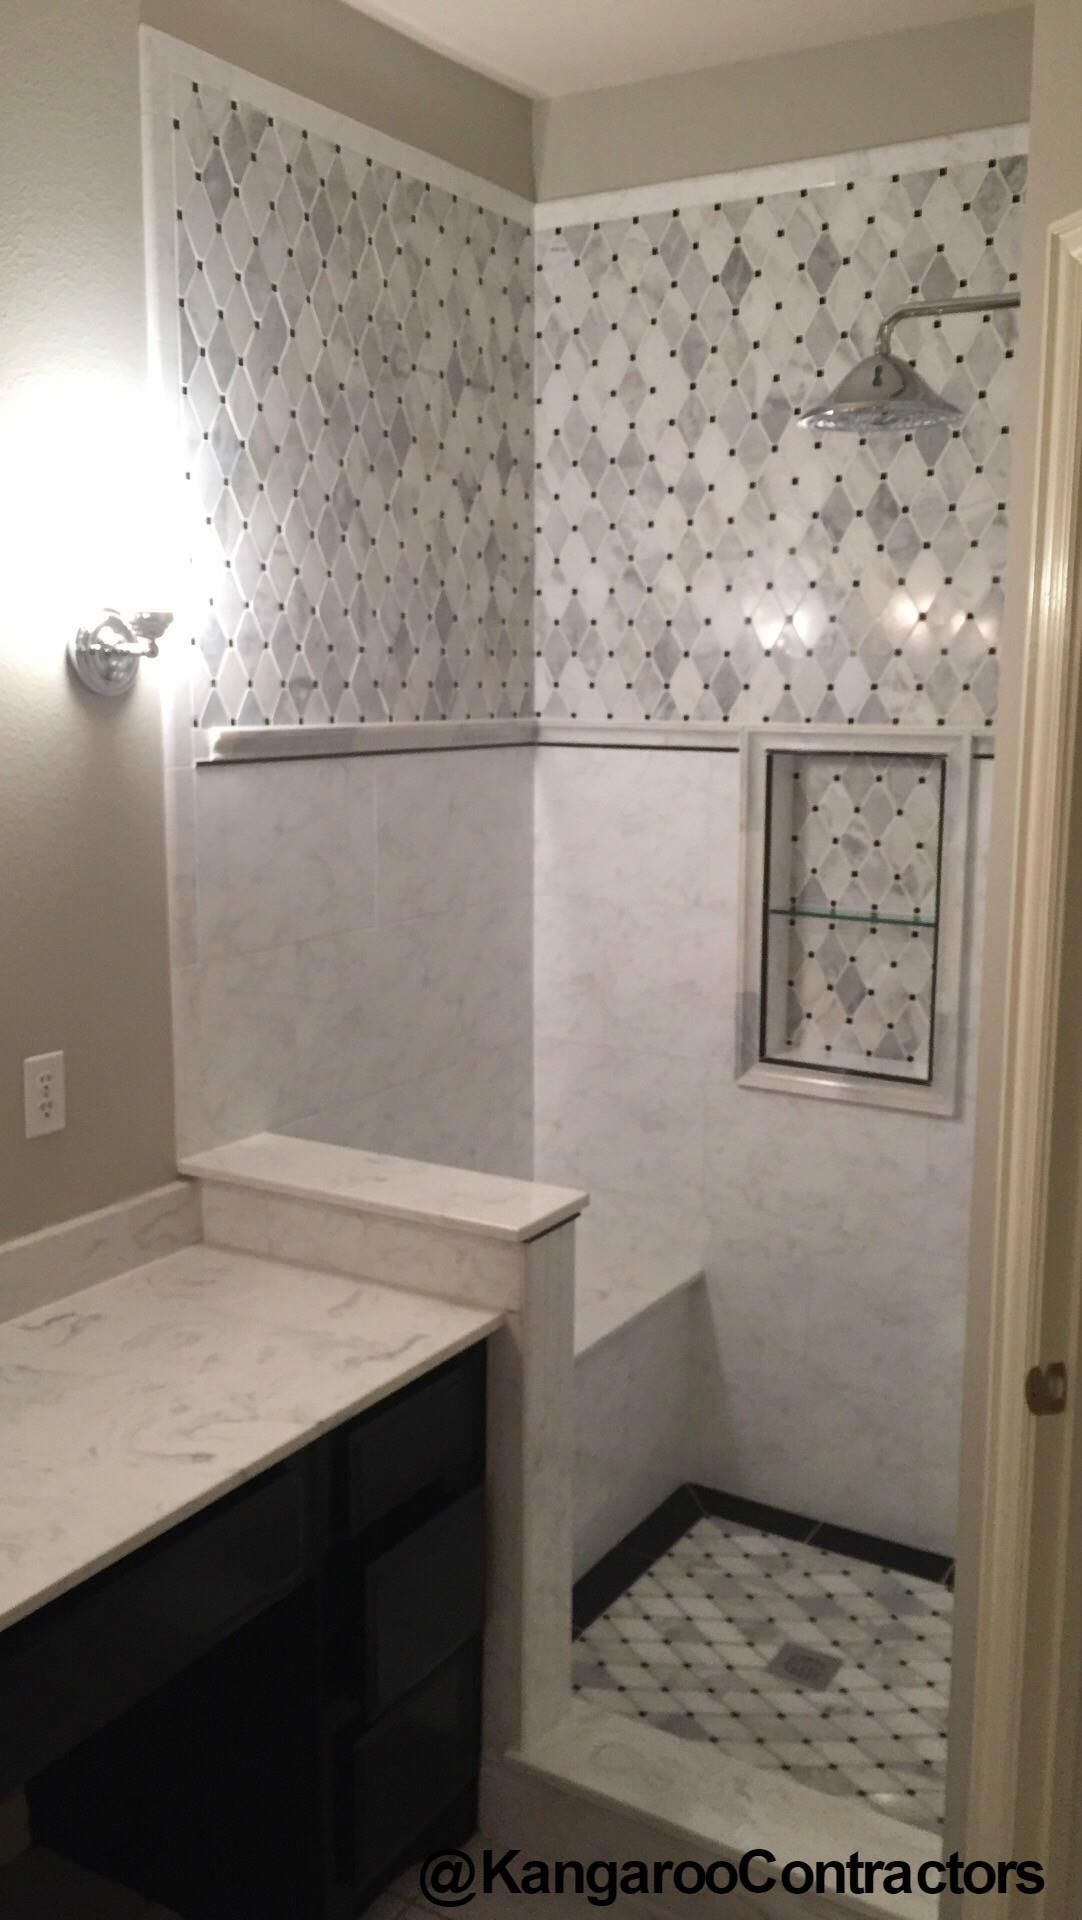 Bathroom Remodeling Dallas bathroom remodel in dallas, tx tile work new tile mosaic tile